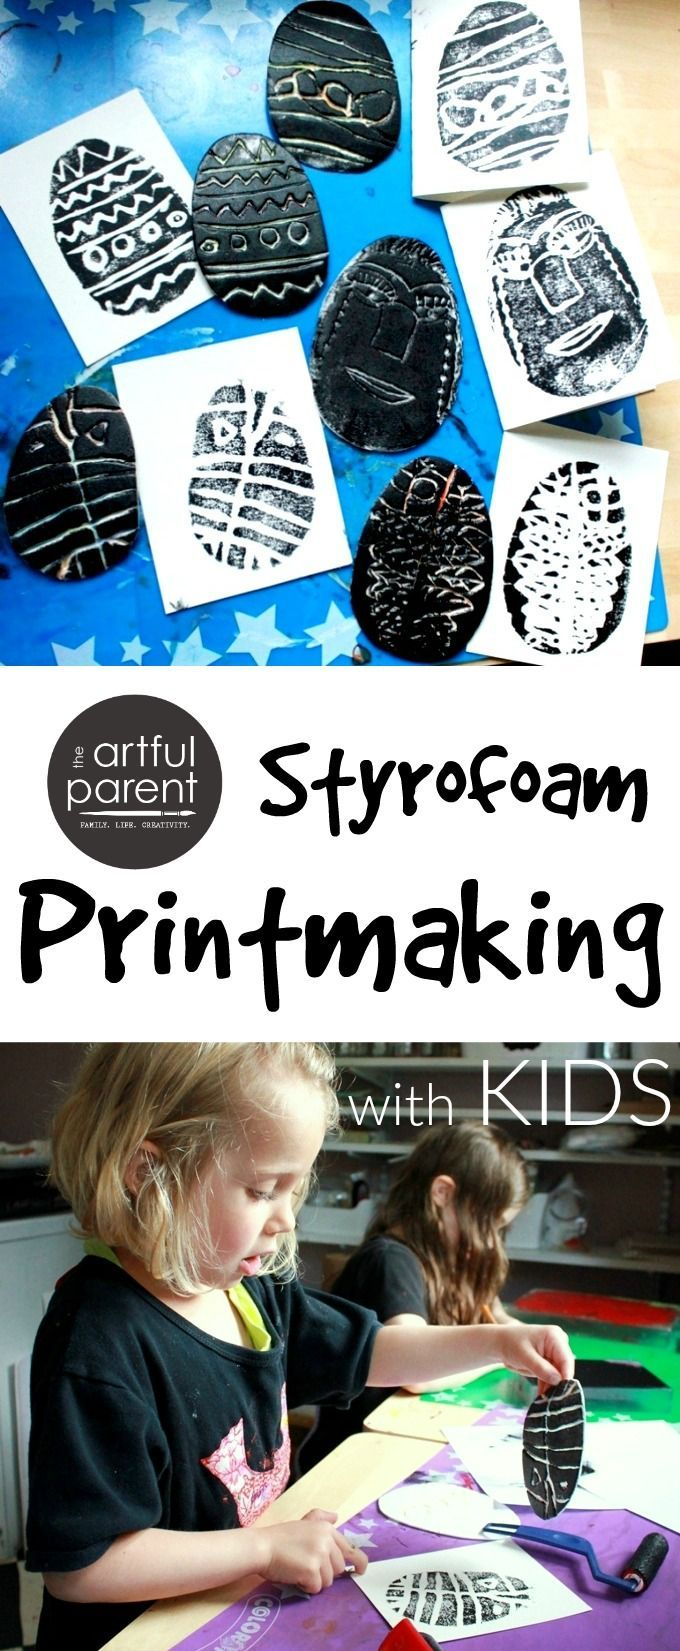 Styrofoam printmaking is a remarkably easy and rewarding printing technique to do with kids for everyday art or for holiday cards. This step-by-step tutorial shows how.